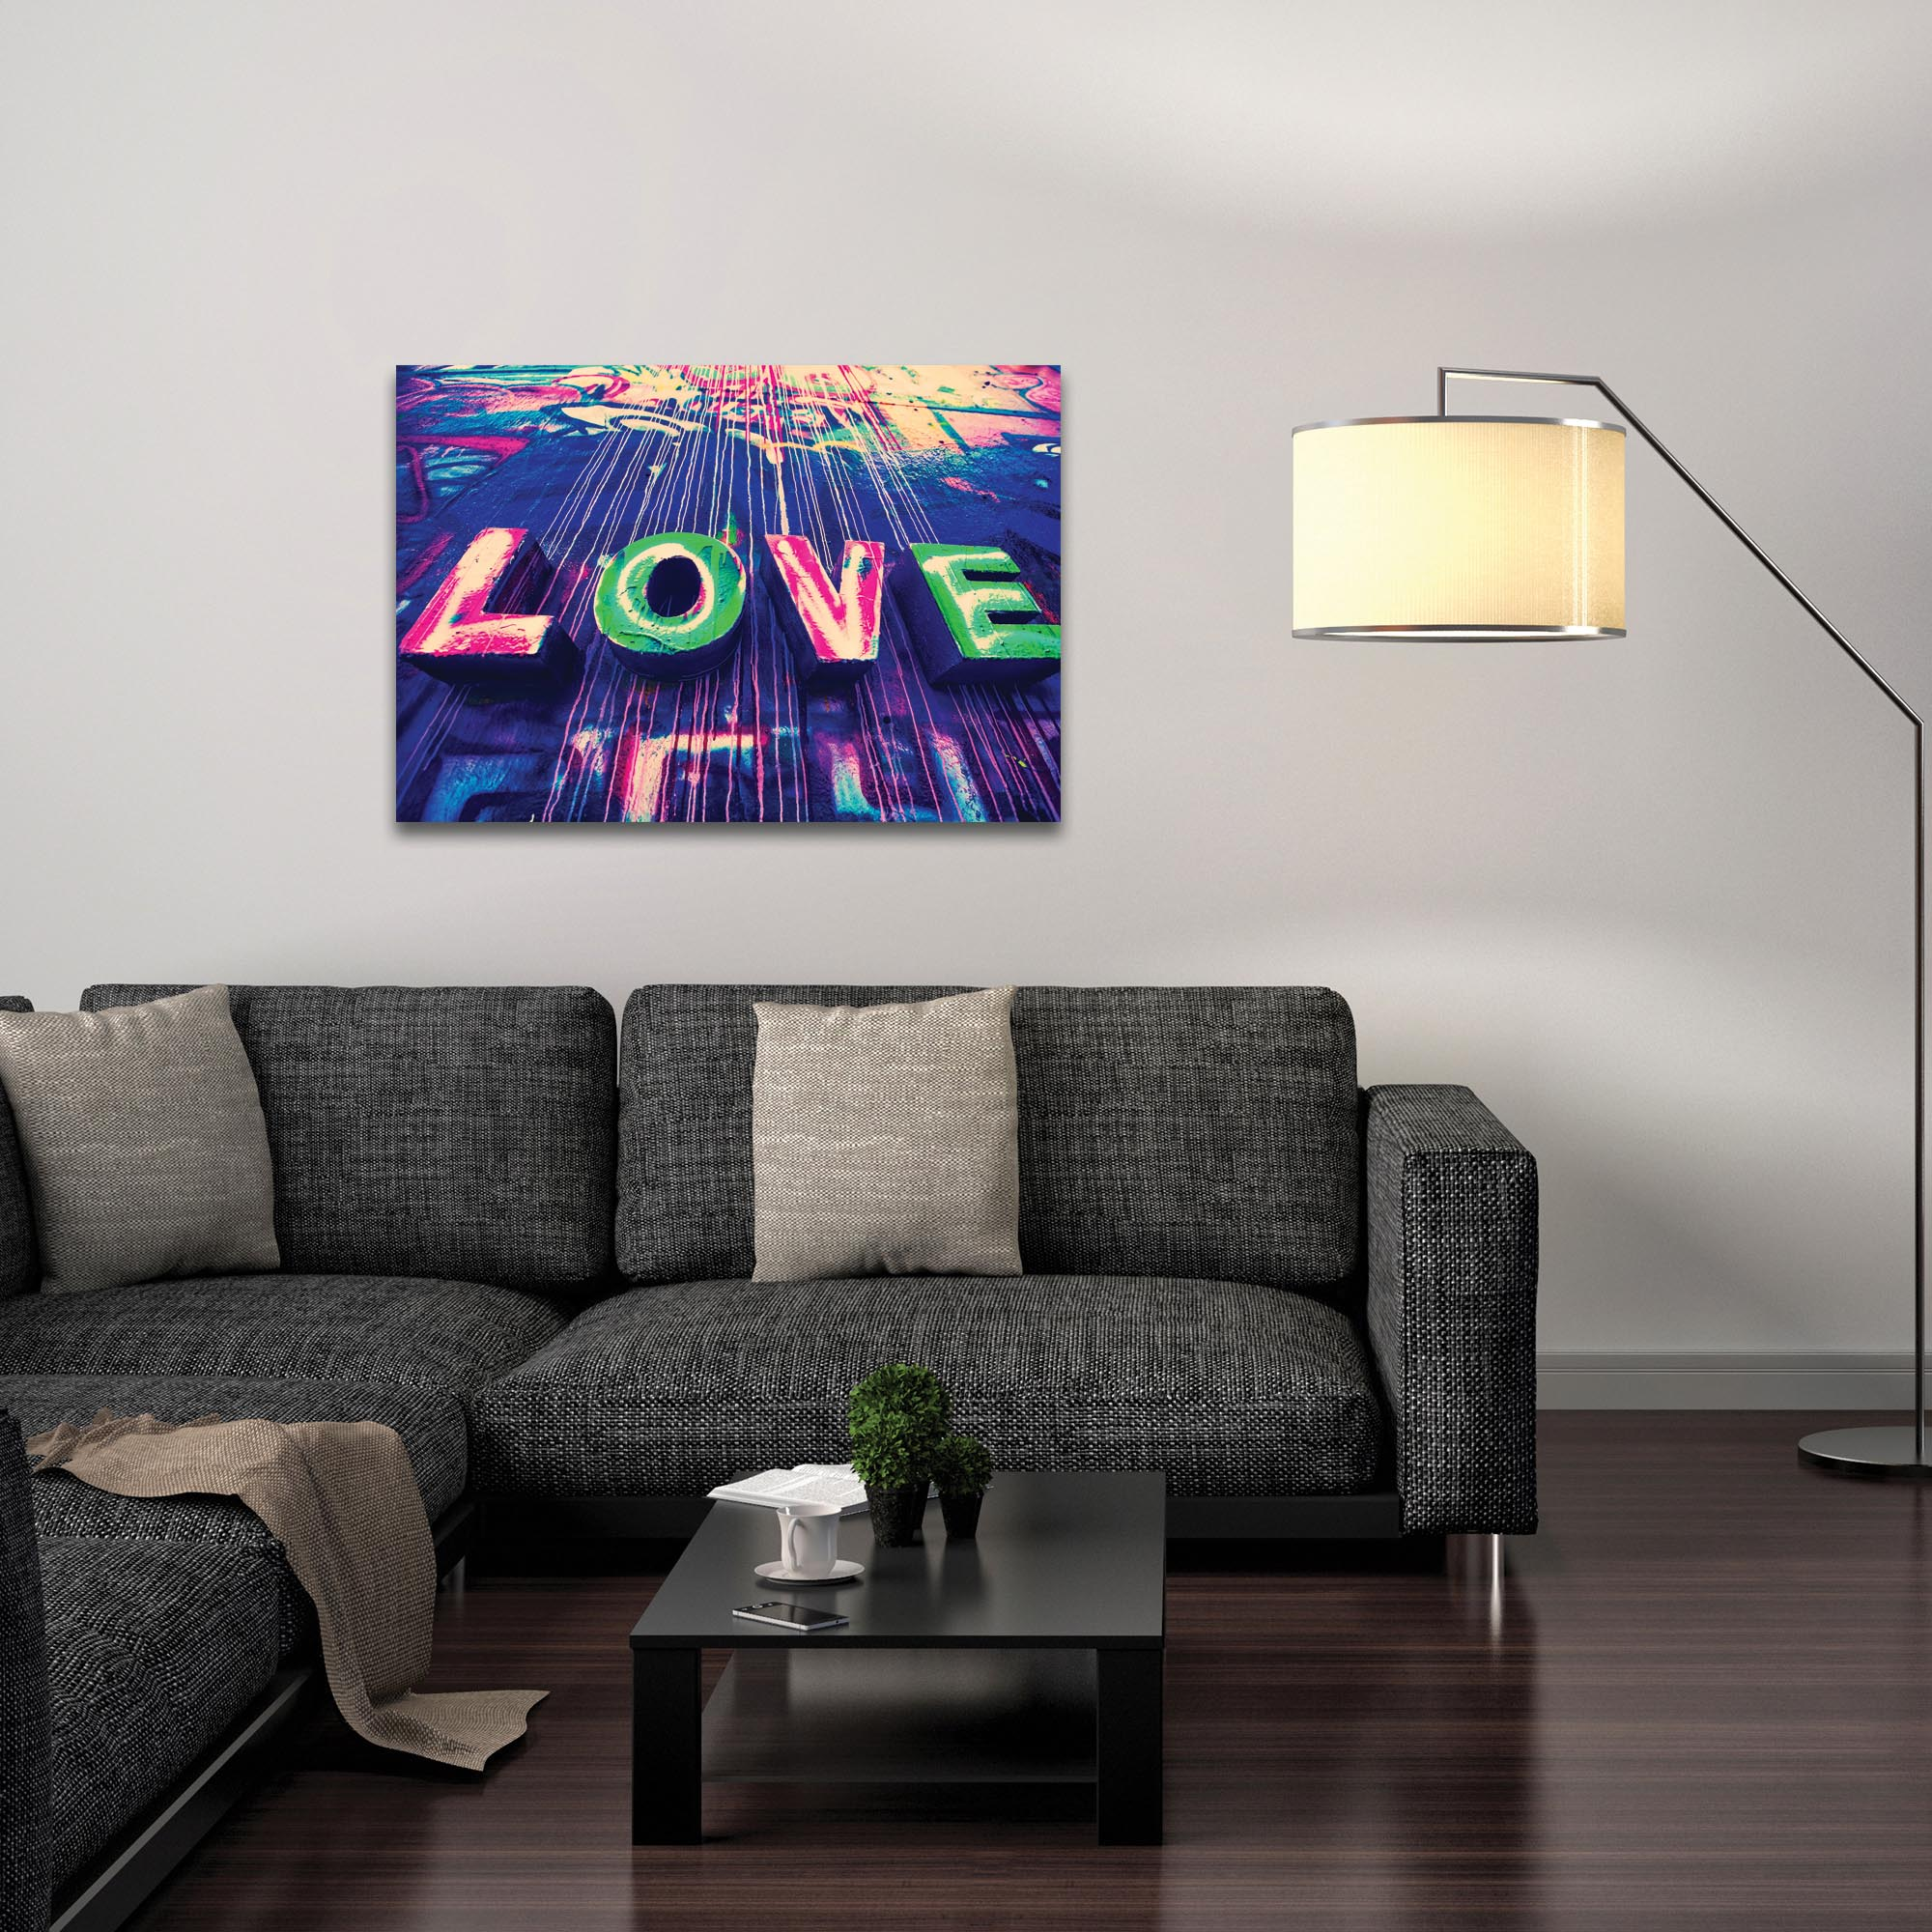 Eclectic Wall Art 'Urban Love' - New Orleans Decor on Metal or Plexiglass - Lifestyle View